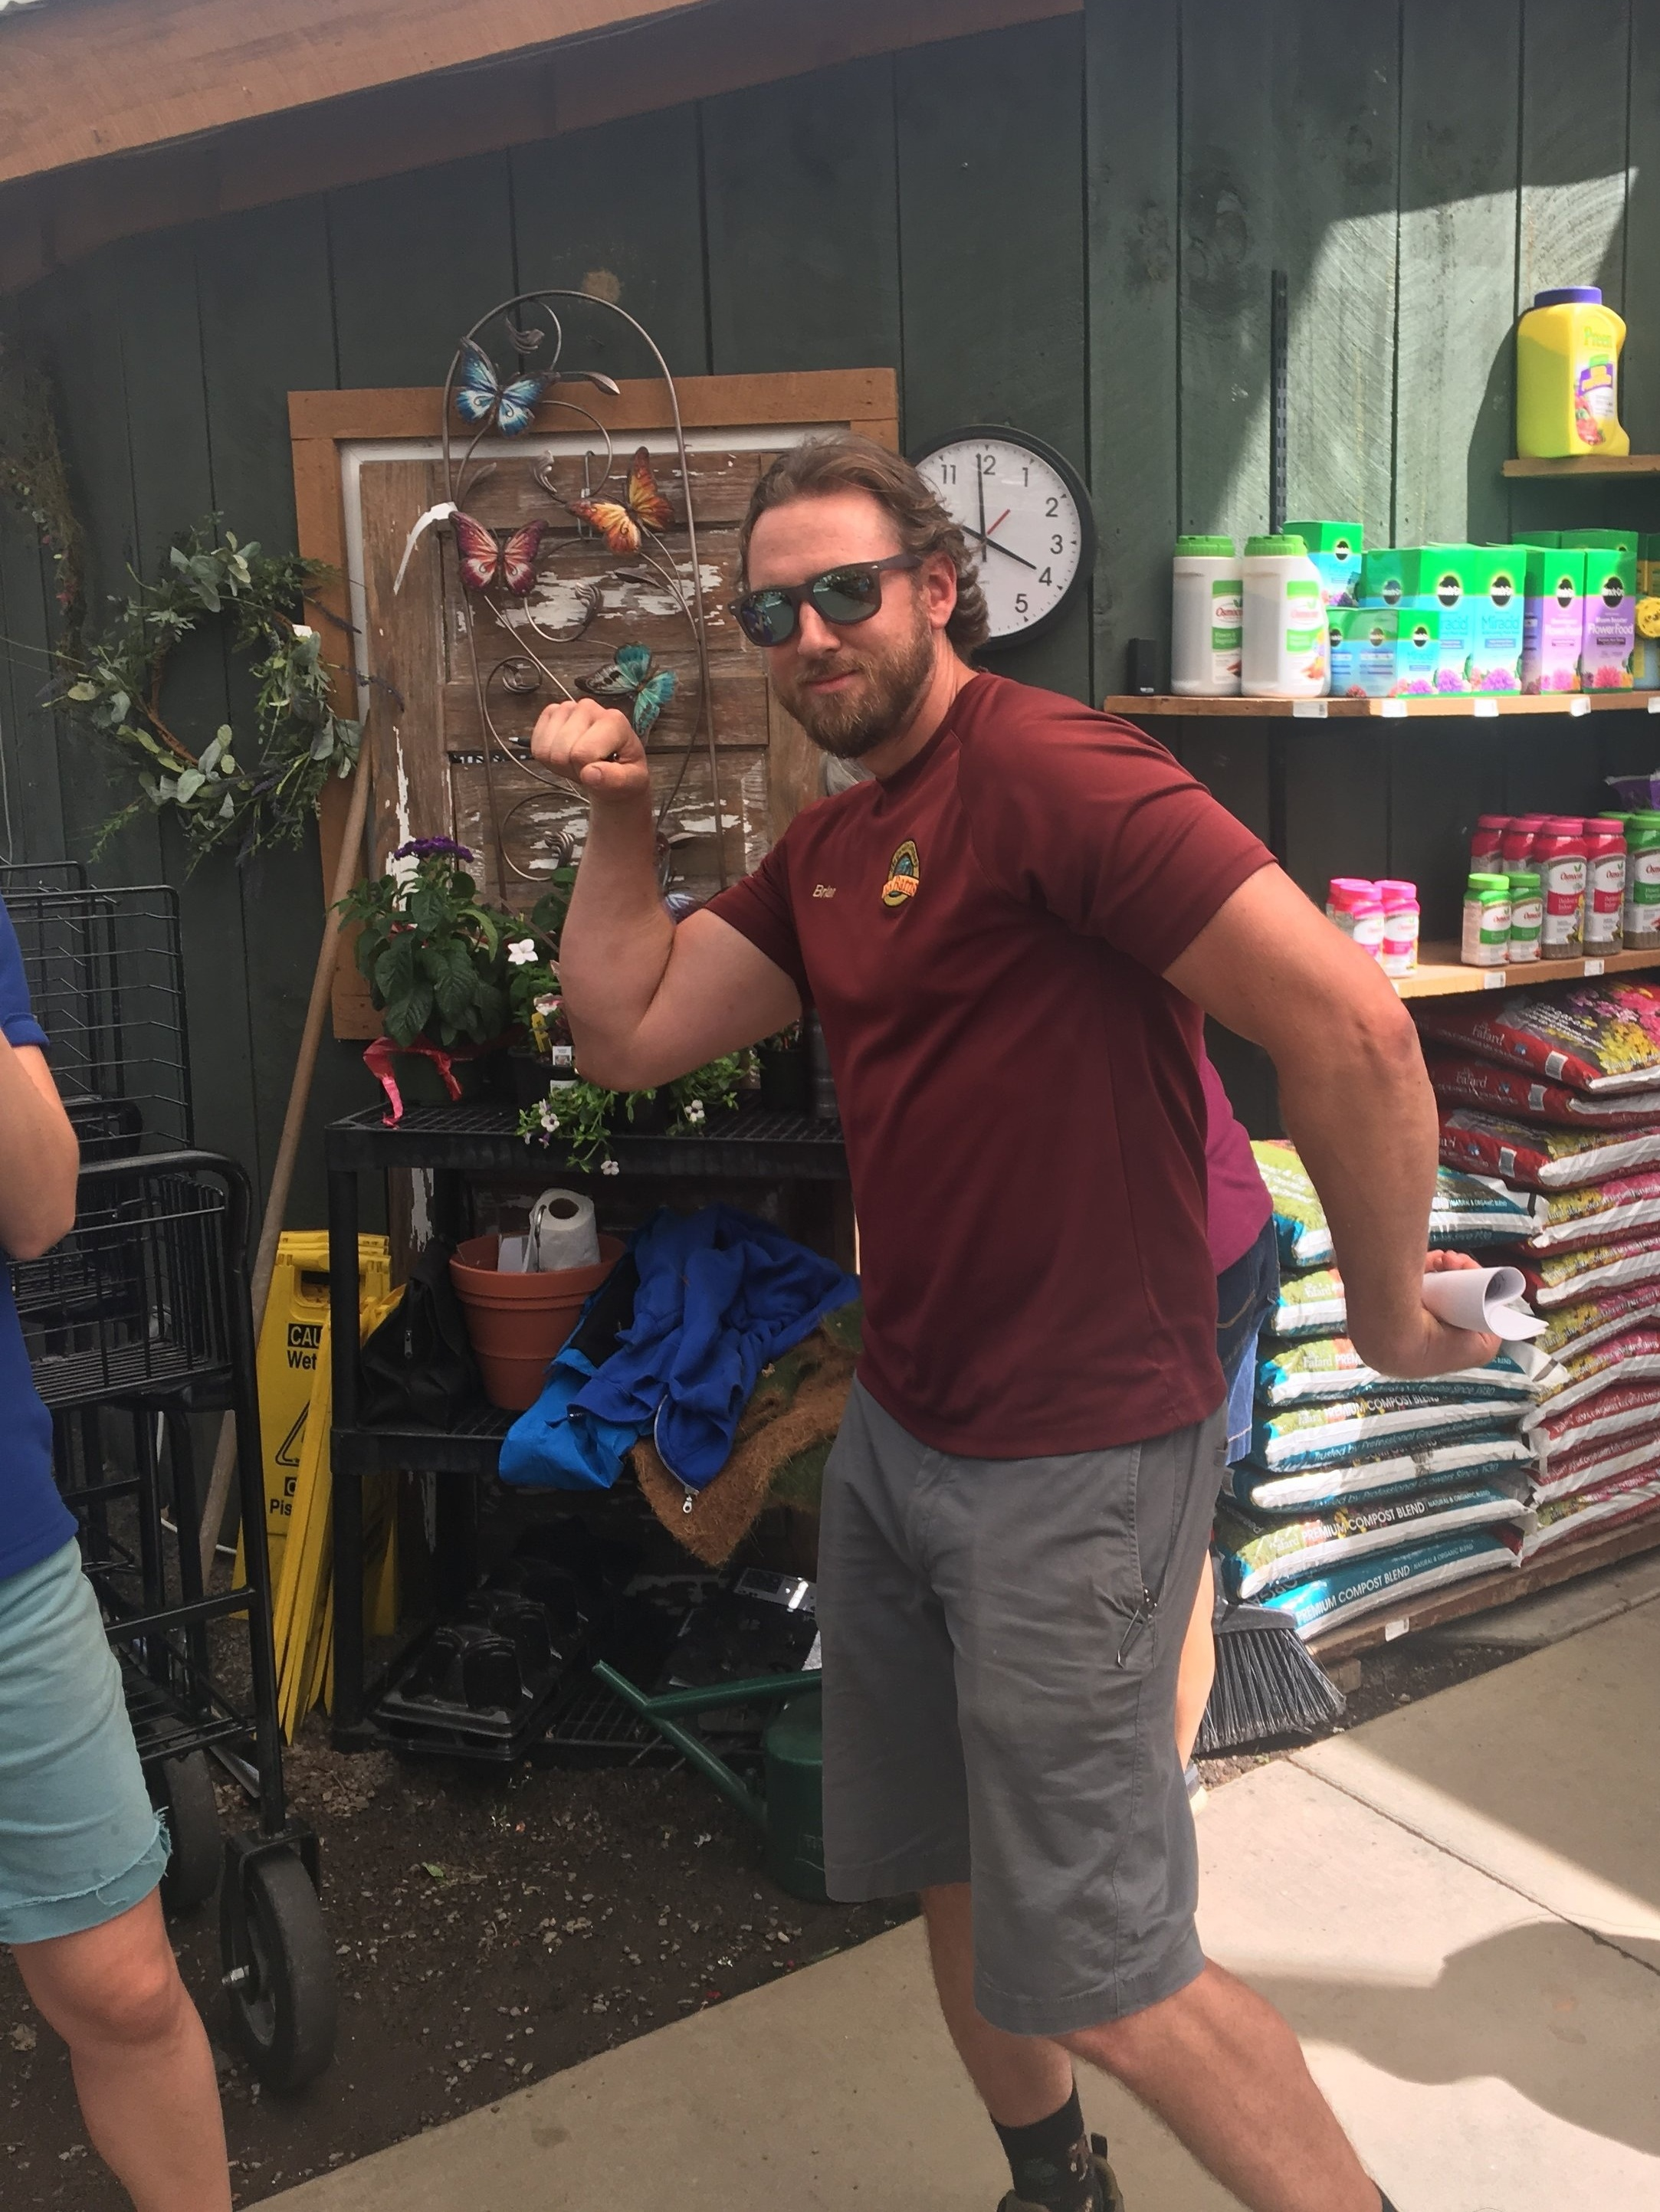 Brian Jennings, our annuals buyer. Always the goofball, but happy to answer your questions about annuals and help you pick out the right ones for your garden.